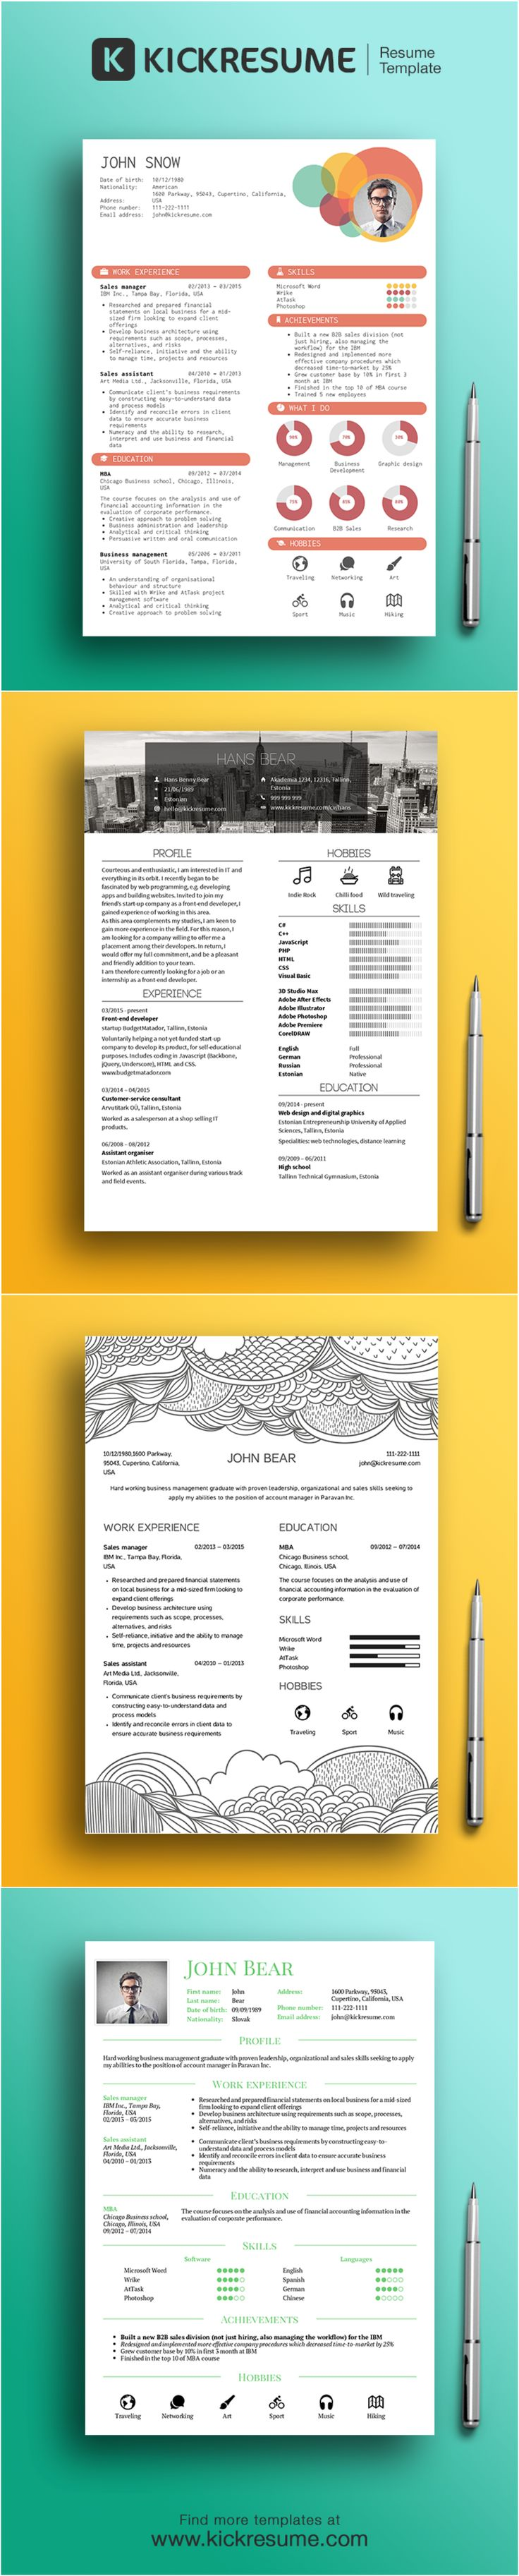 beautiful infographic resume templates by wwwkickresumecom - Graphic Resume Templates